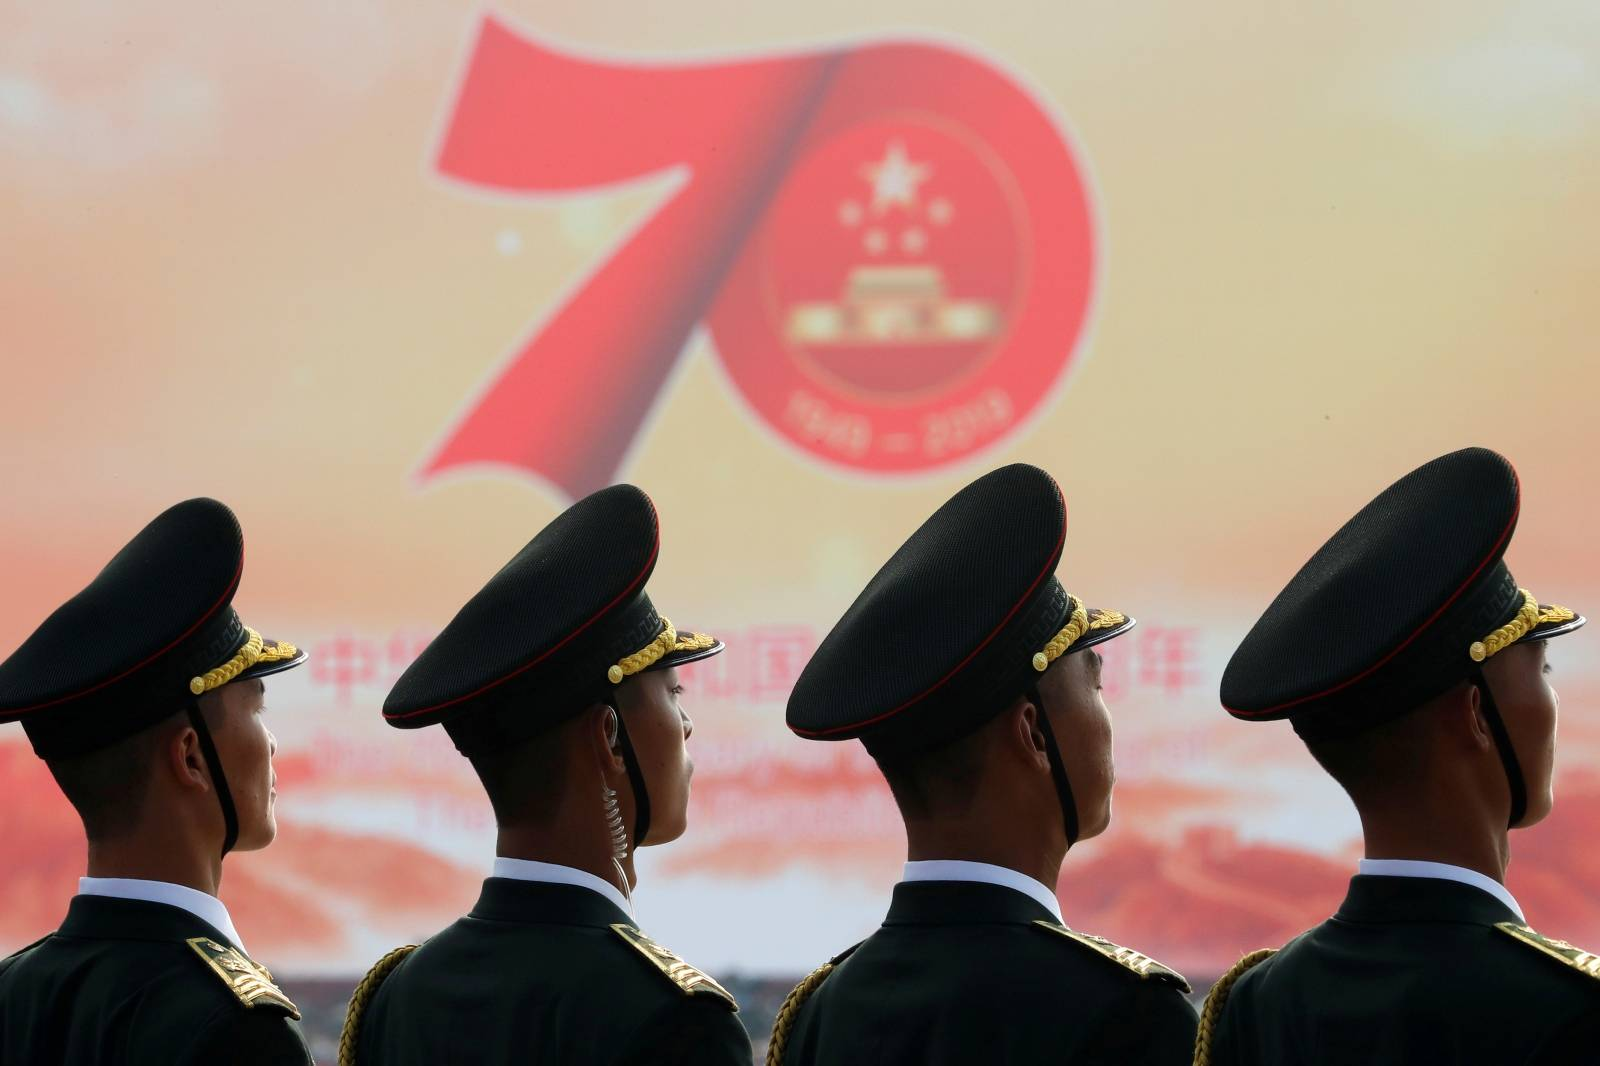 Soldiers of People's Liberation Army (PLA) are seen in front of a sign marking the 70th founding anniversary of People's Republic of China before a military parade on its National Day in Beijing